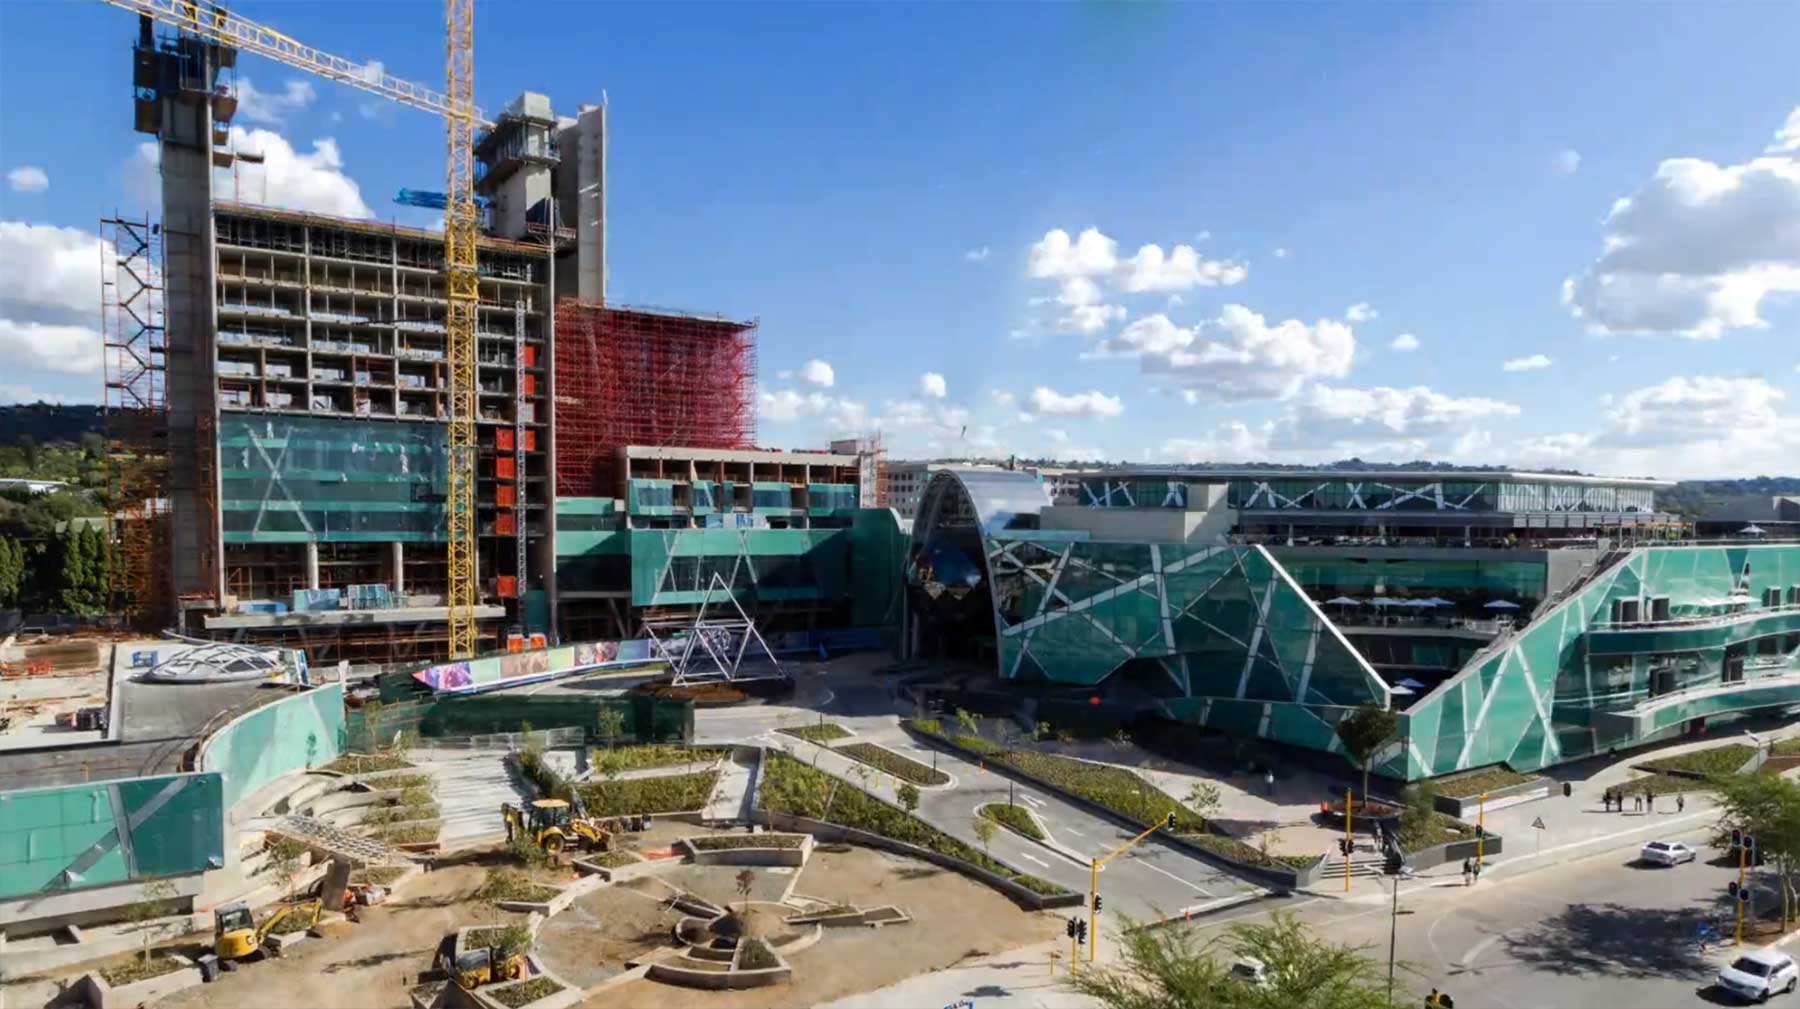 Timelapse: 4 Jahre Casino-Bau in 3 Minuten timelapse-baustelle-Time-Square-Casino